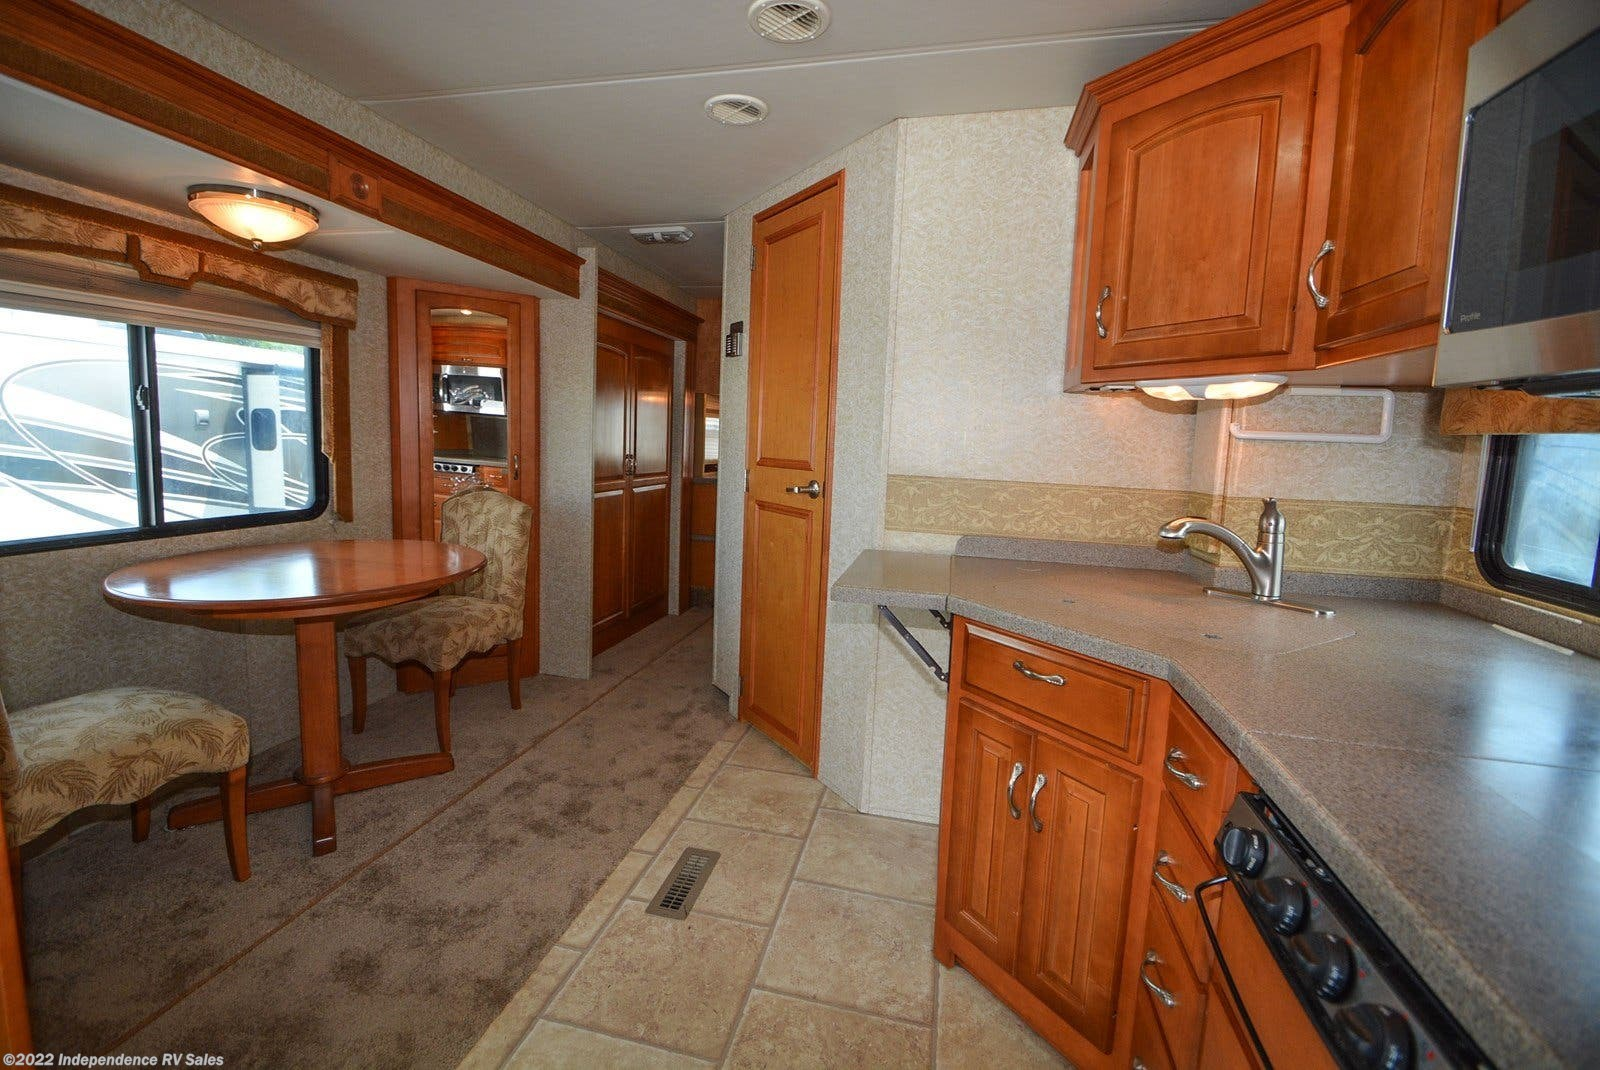 2008 Newmar Grand Star 3750 | Two Slides, Sale Pending